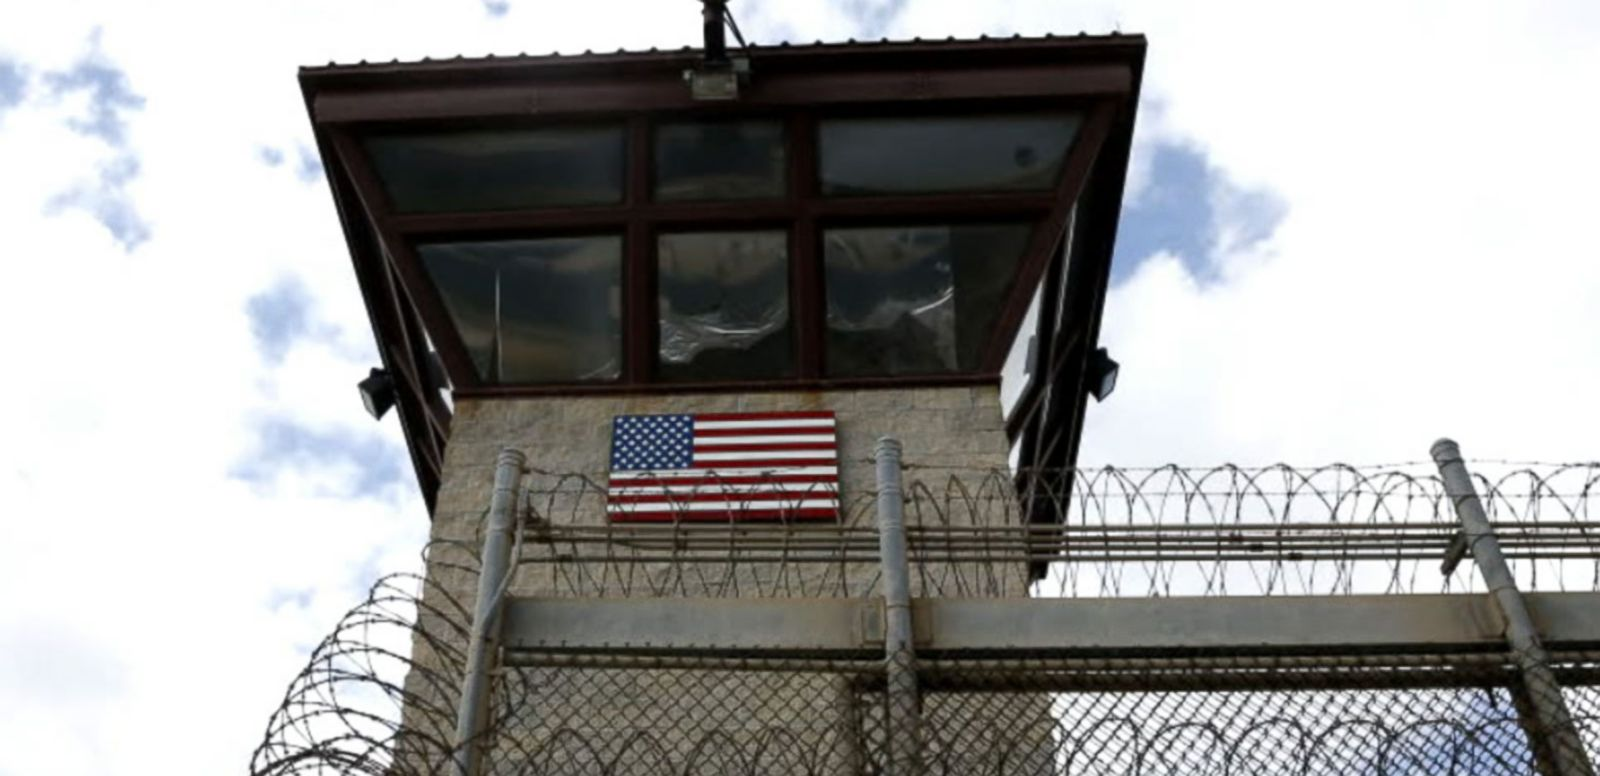 VIDEO: 'Guantanamo Diary' Goes Inside Terror Prison